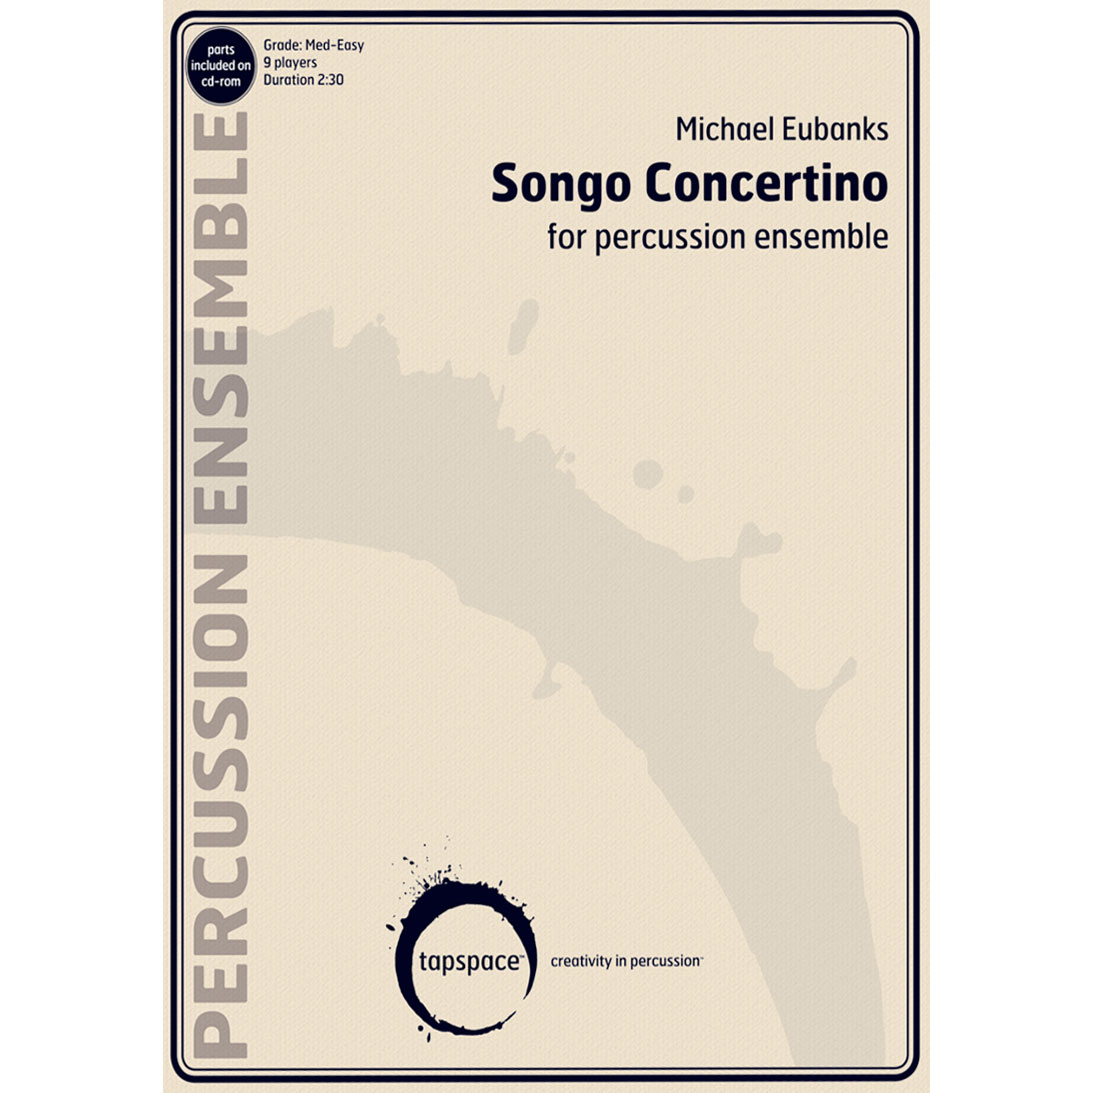 Songo Concertino by Michael Eubanks